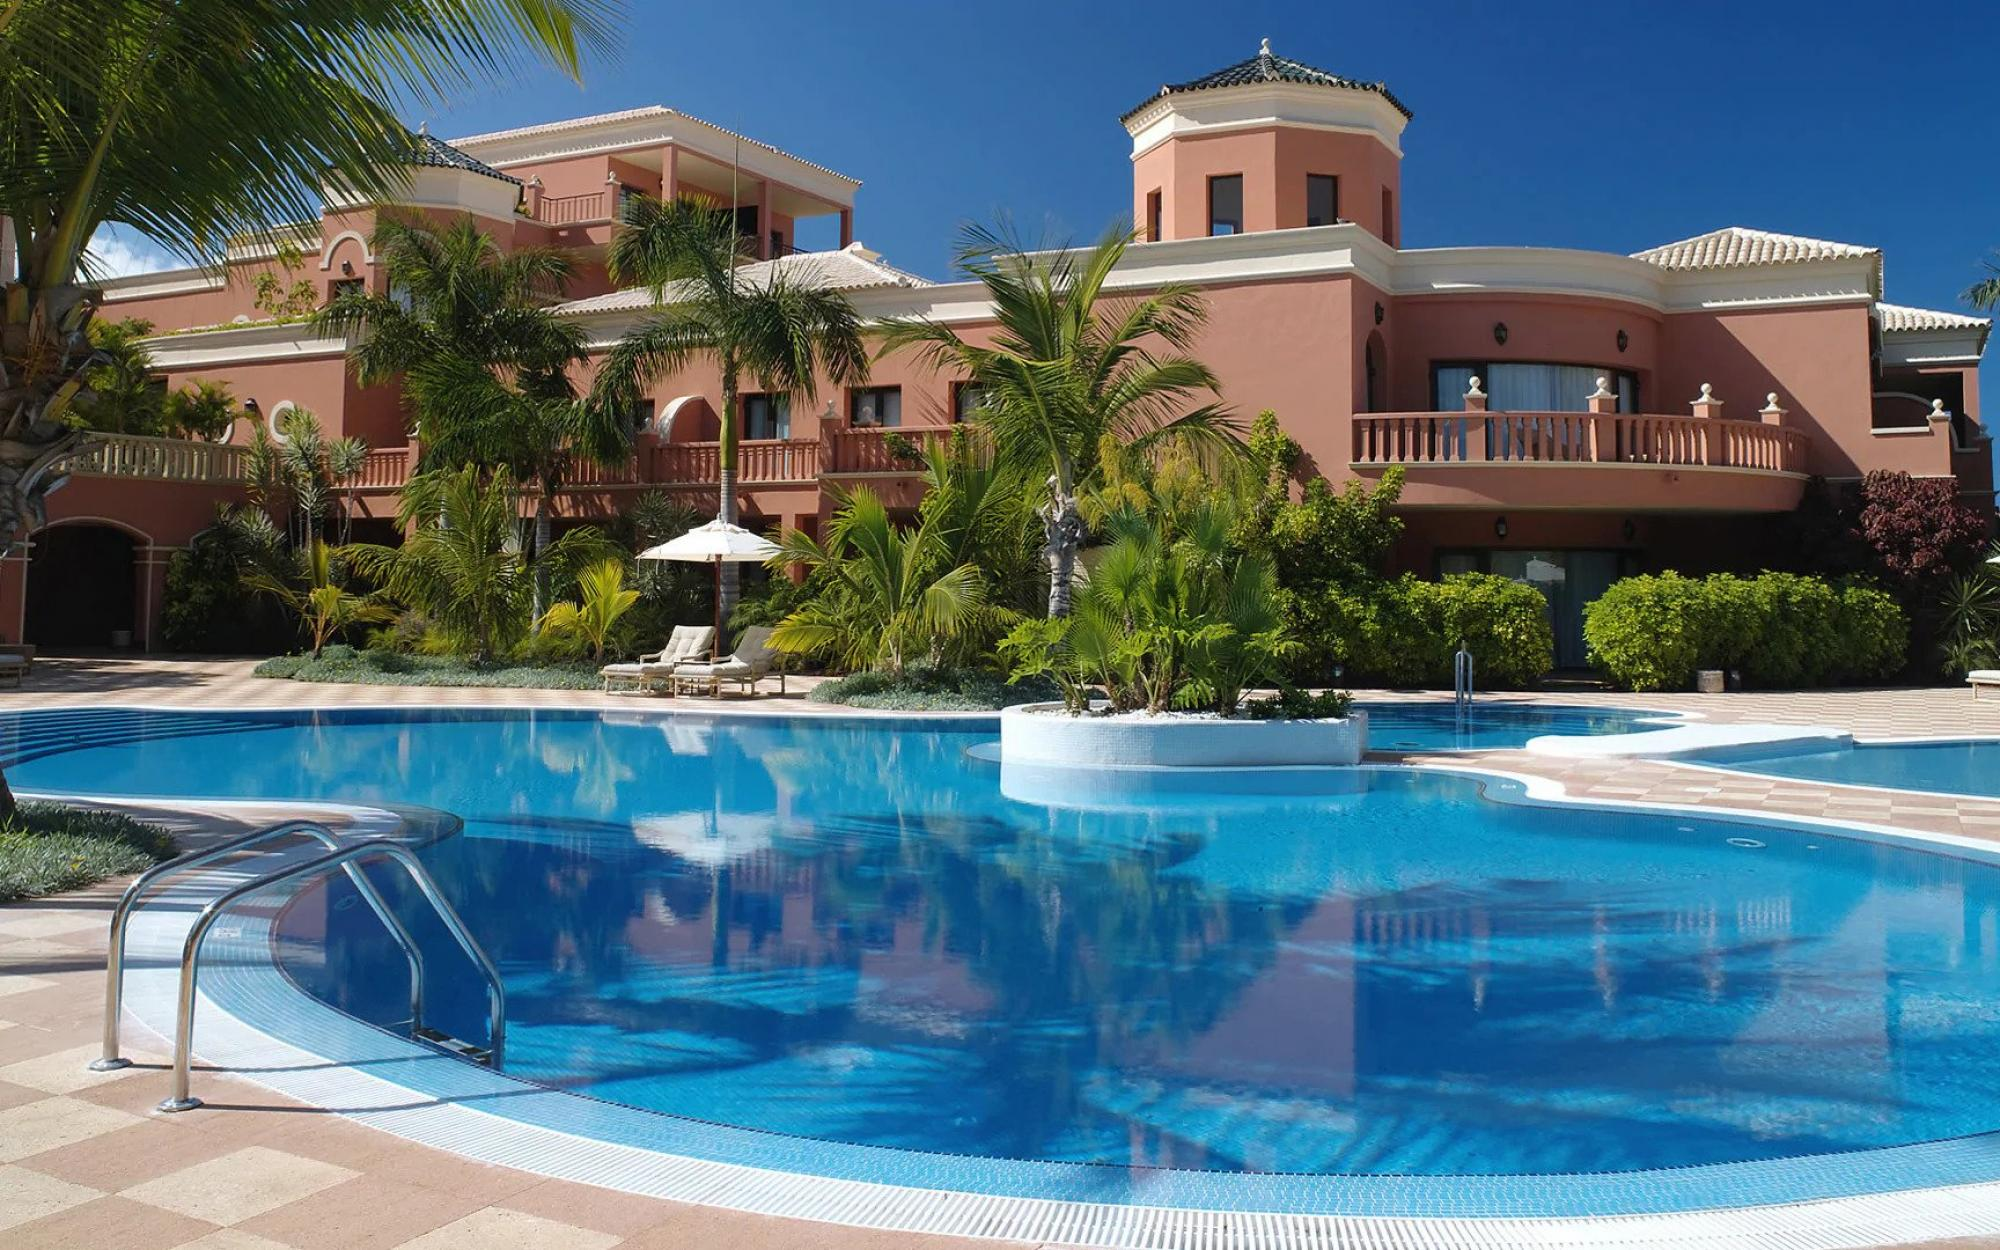 The Hotel Las Madrigueras's picturesque main pool in dazzling Tenerife.